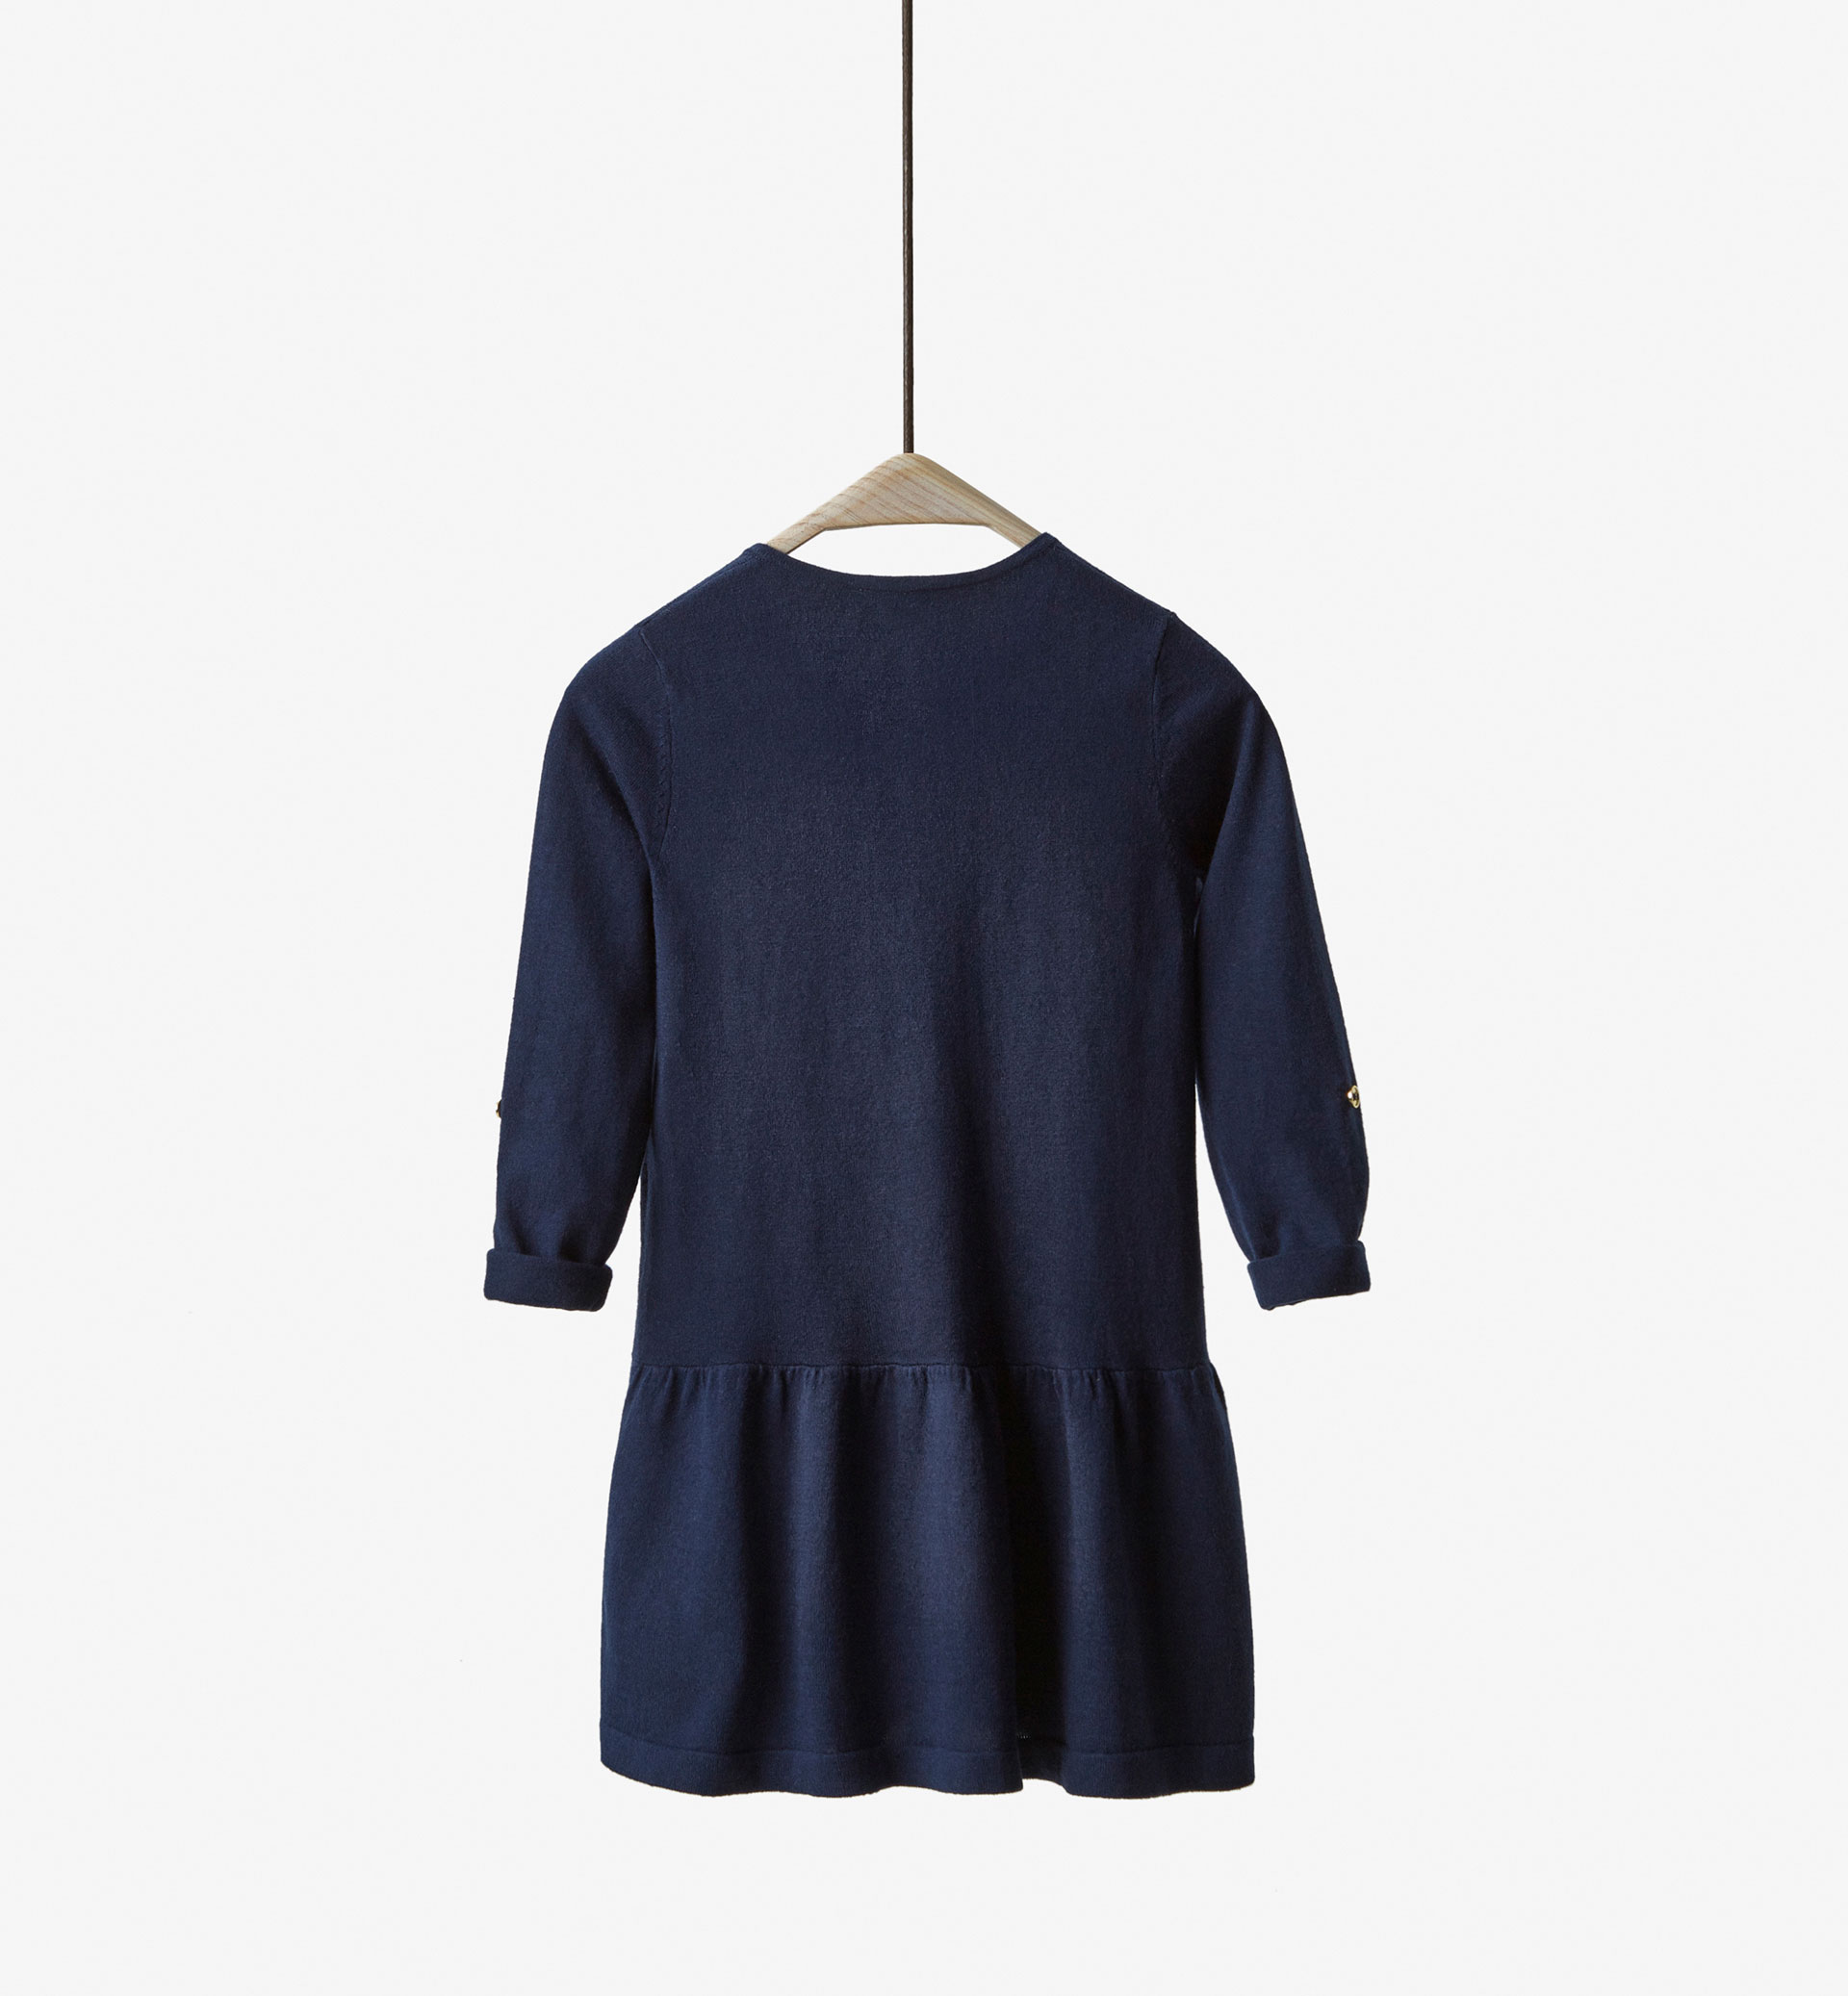 NAVY TRICOT DRESS